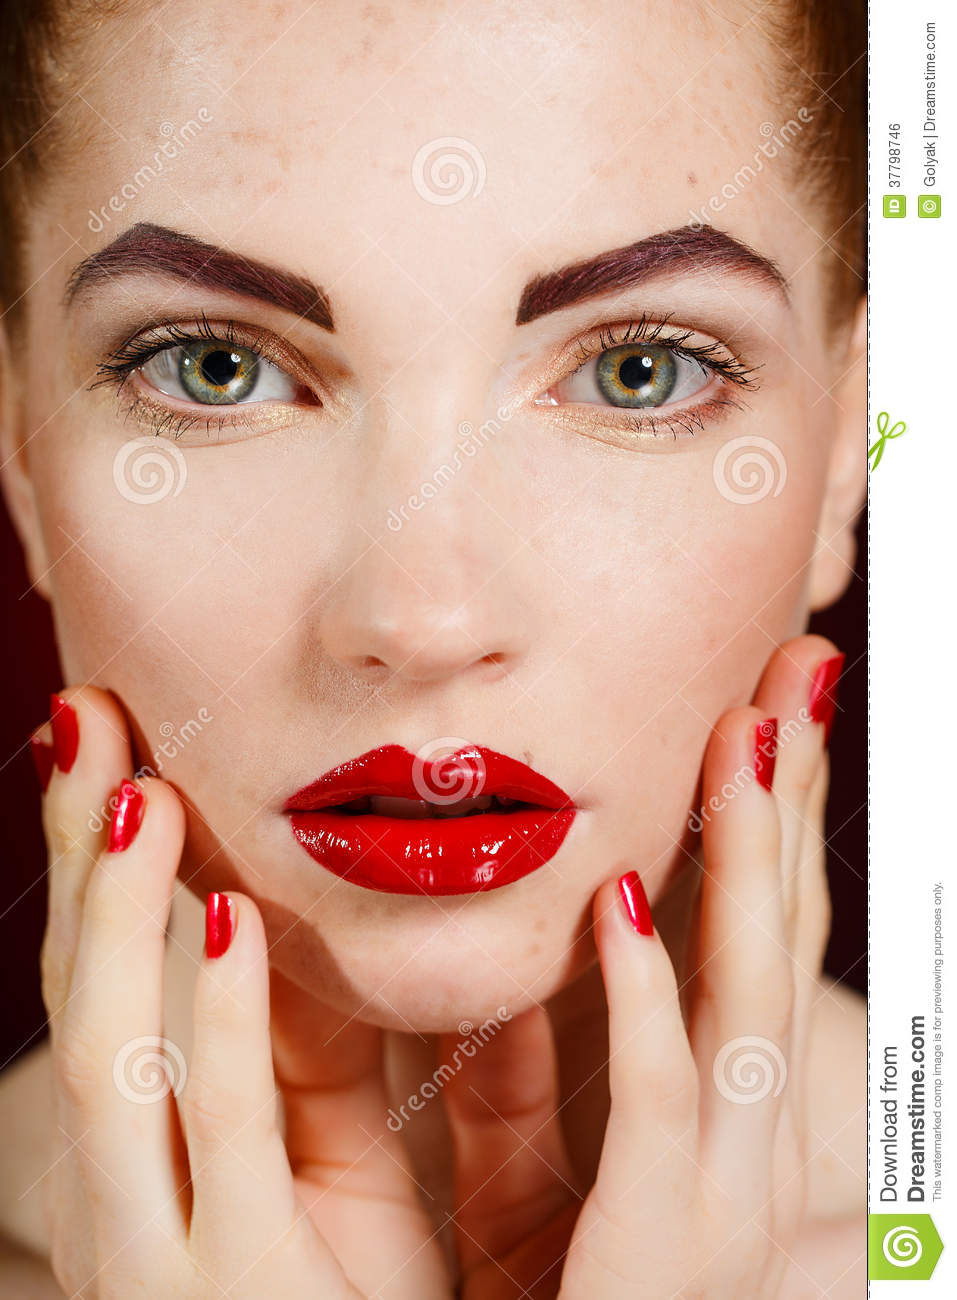 Close-up Portrait Of European Young Woman Model With